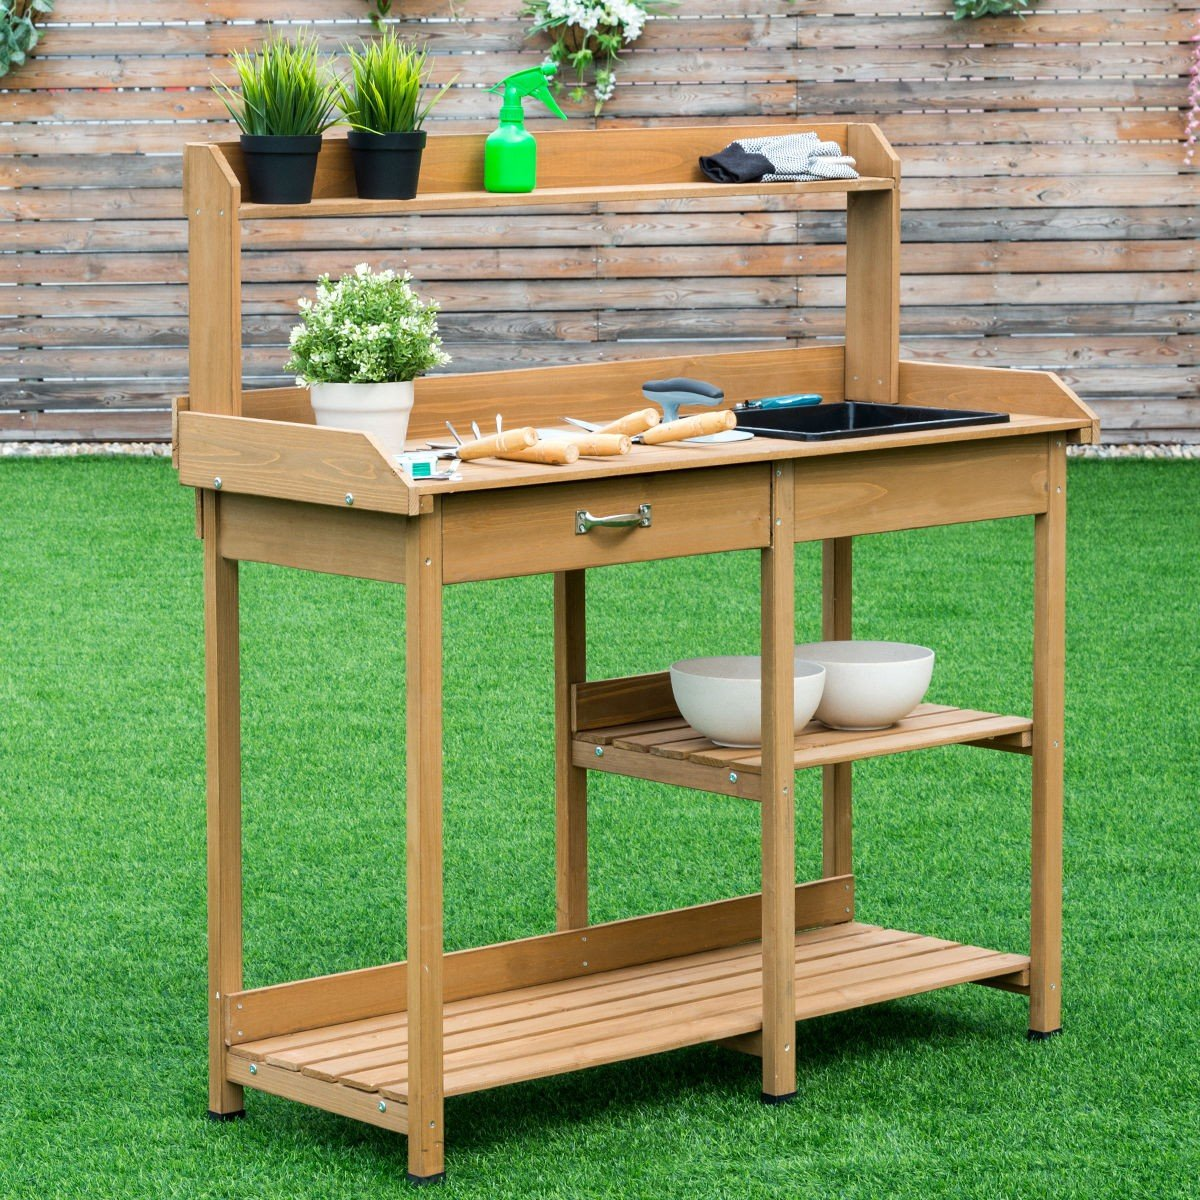 Garden Wooden Planting Potting Bench Table with Shelves - By Choice Products